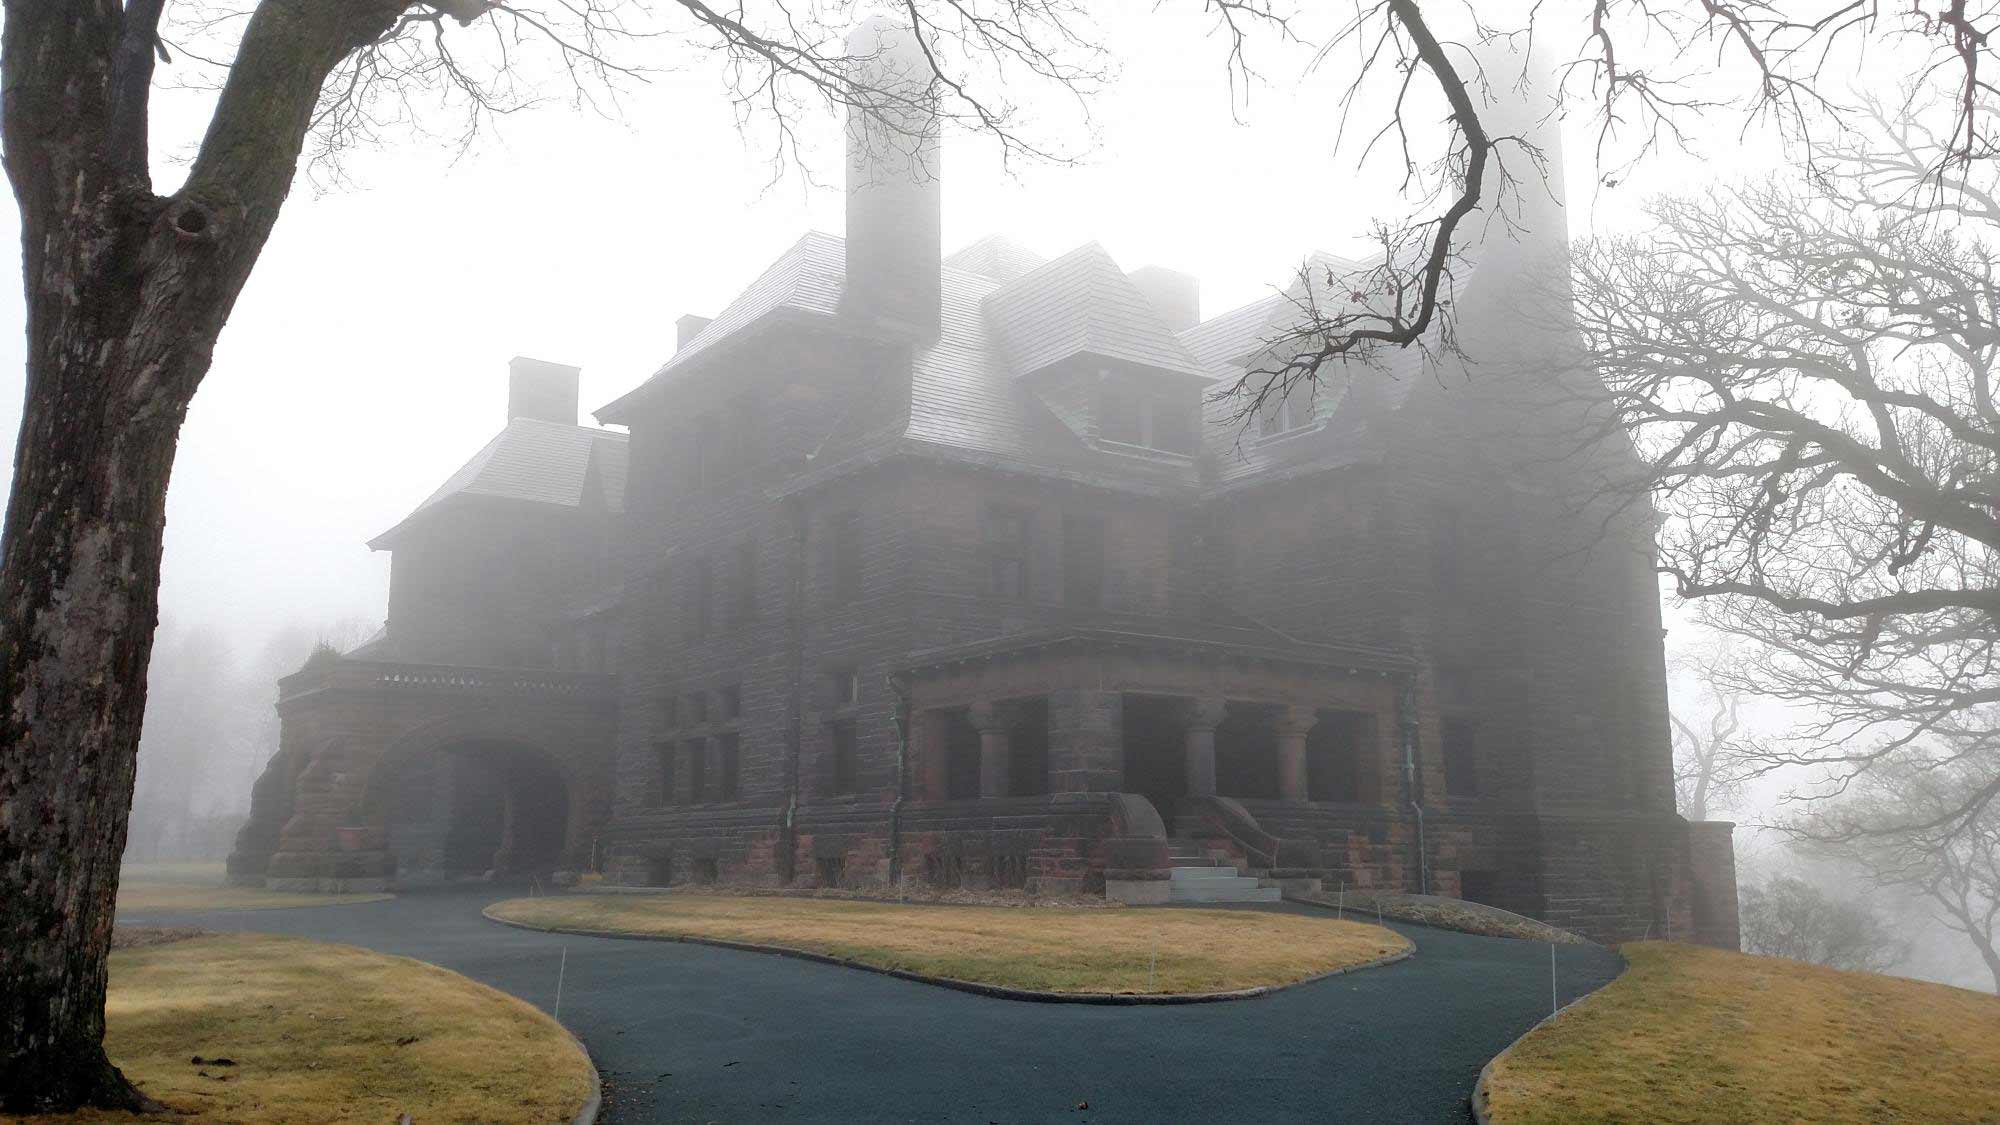 Hill House in dense fog with a leafless tree bordering the image